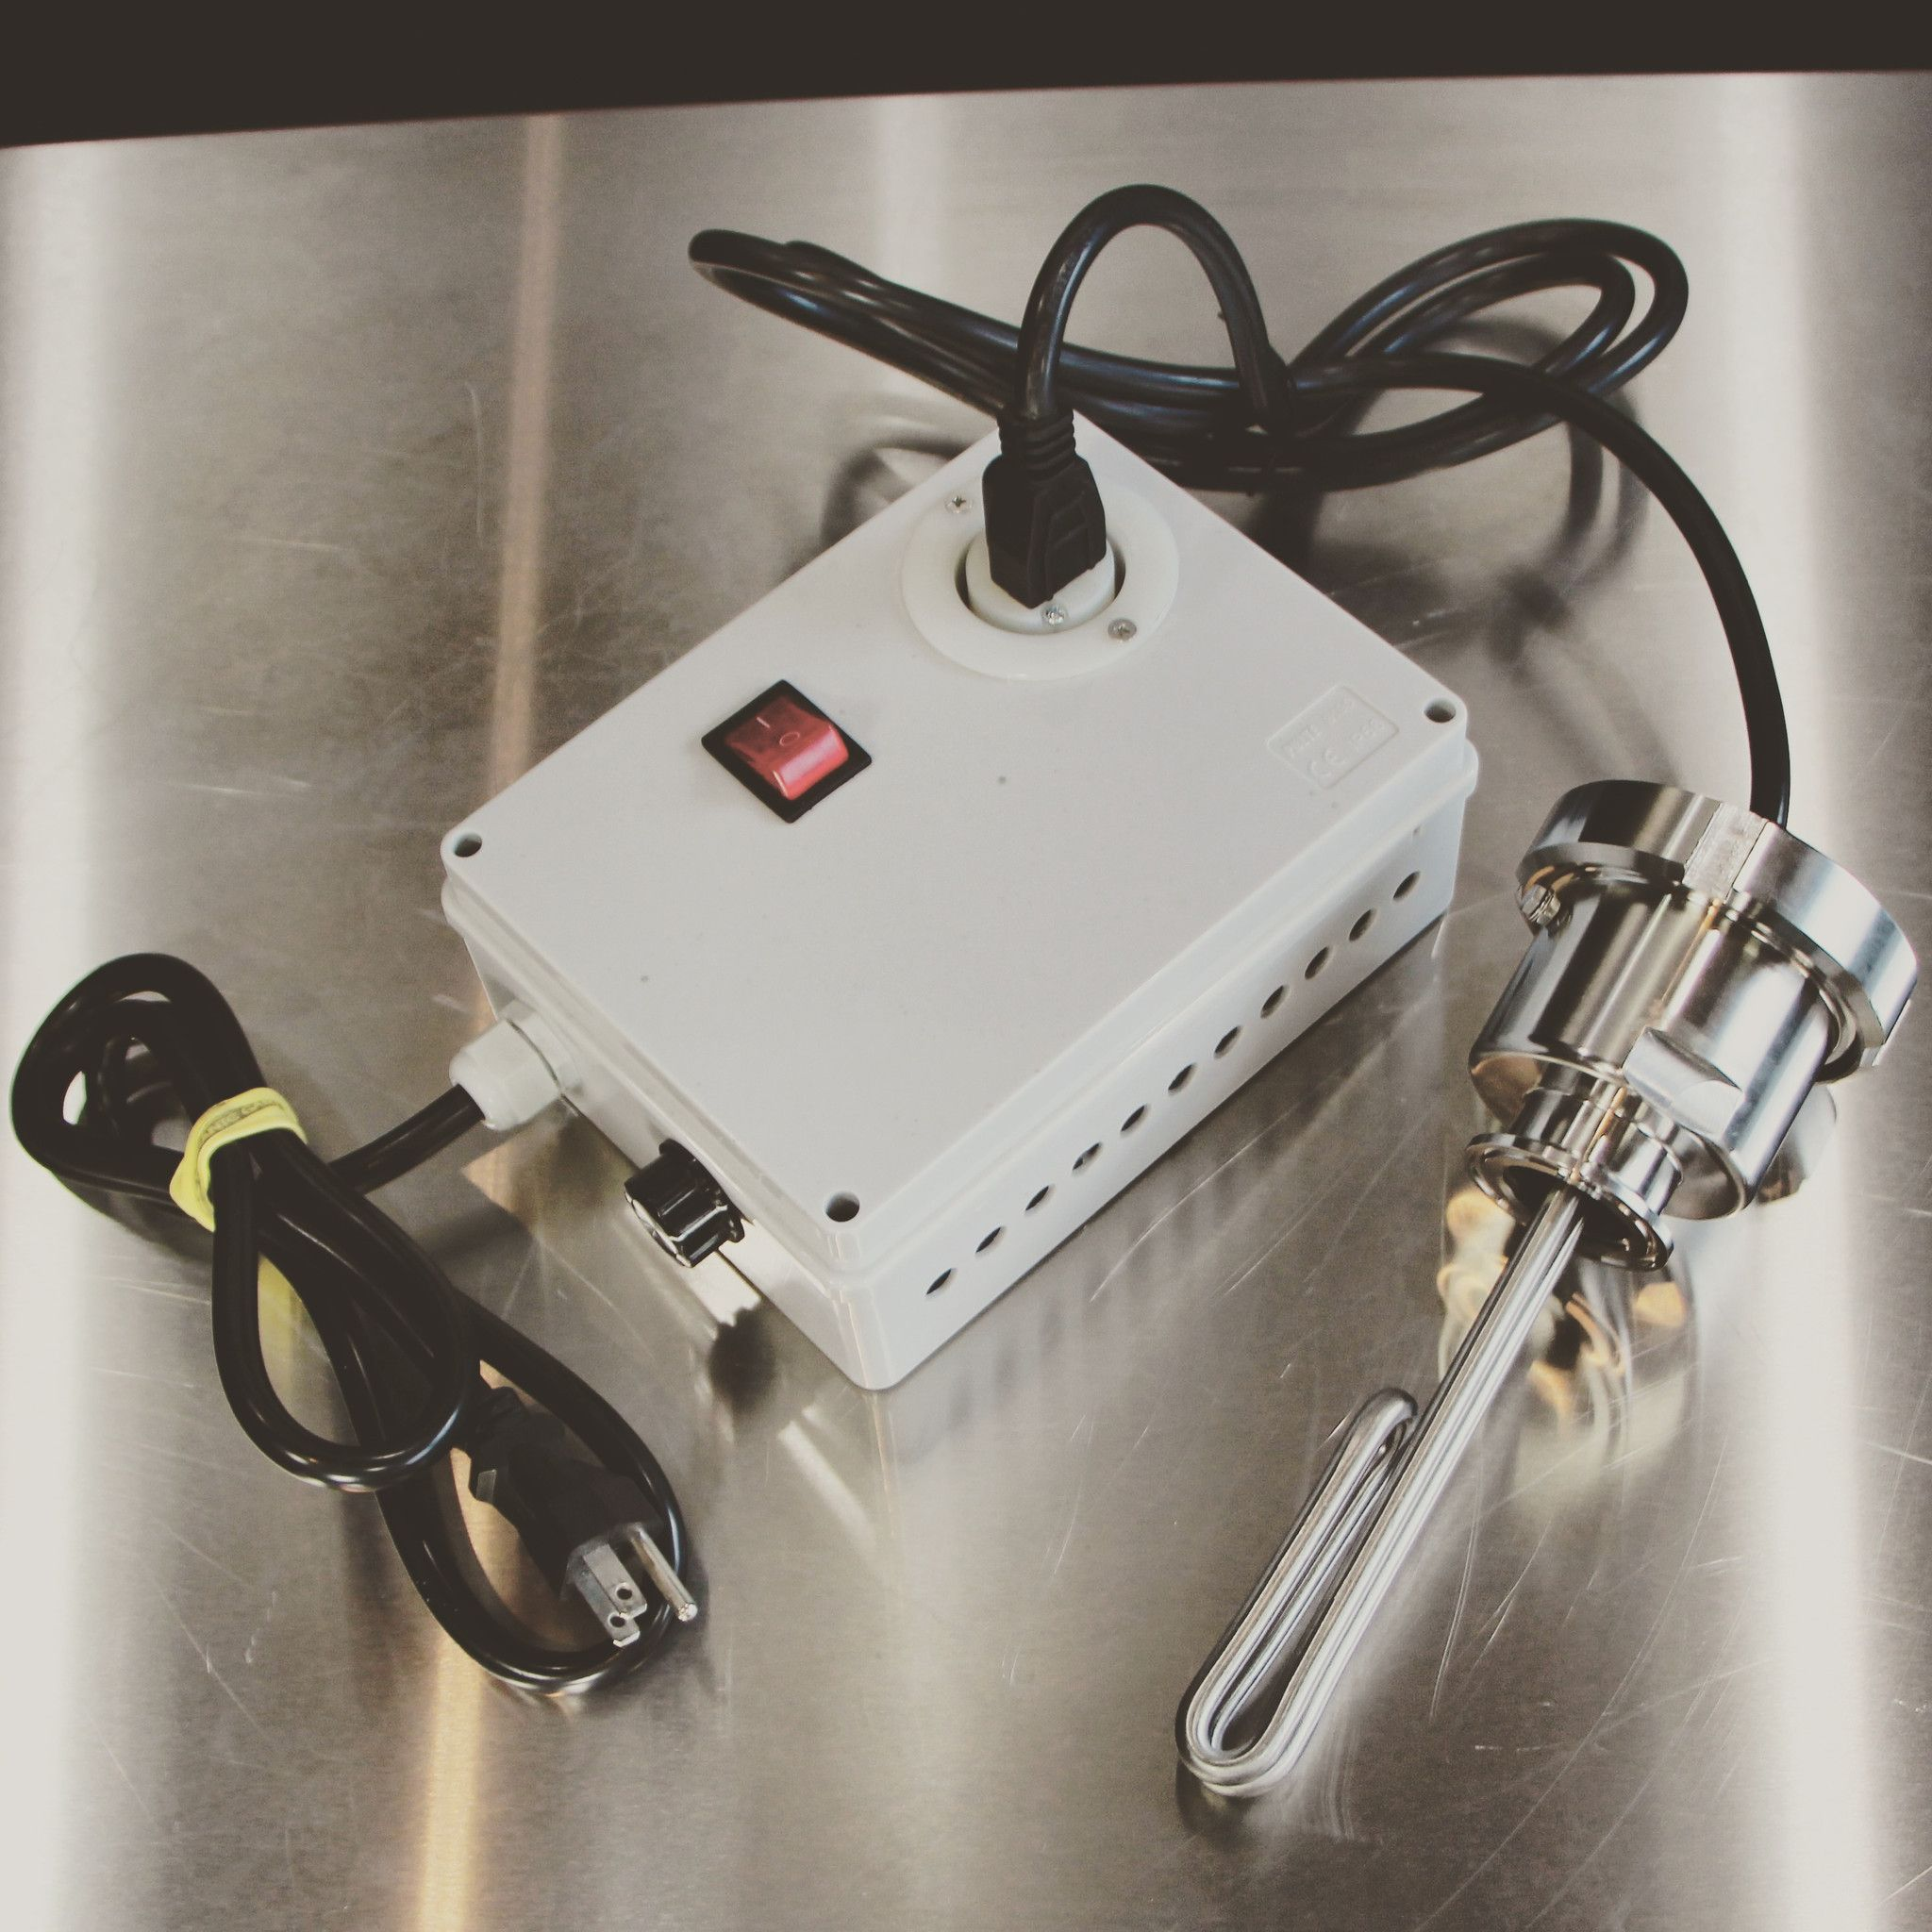 120V Controller and Element for Stainless Stills and Brew System in